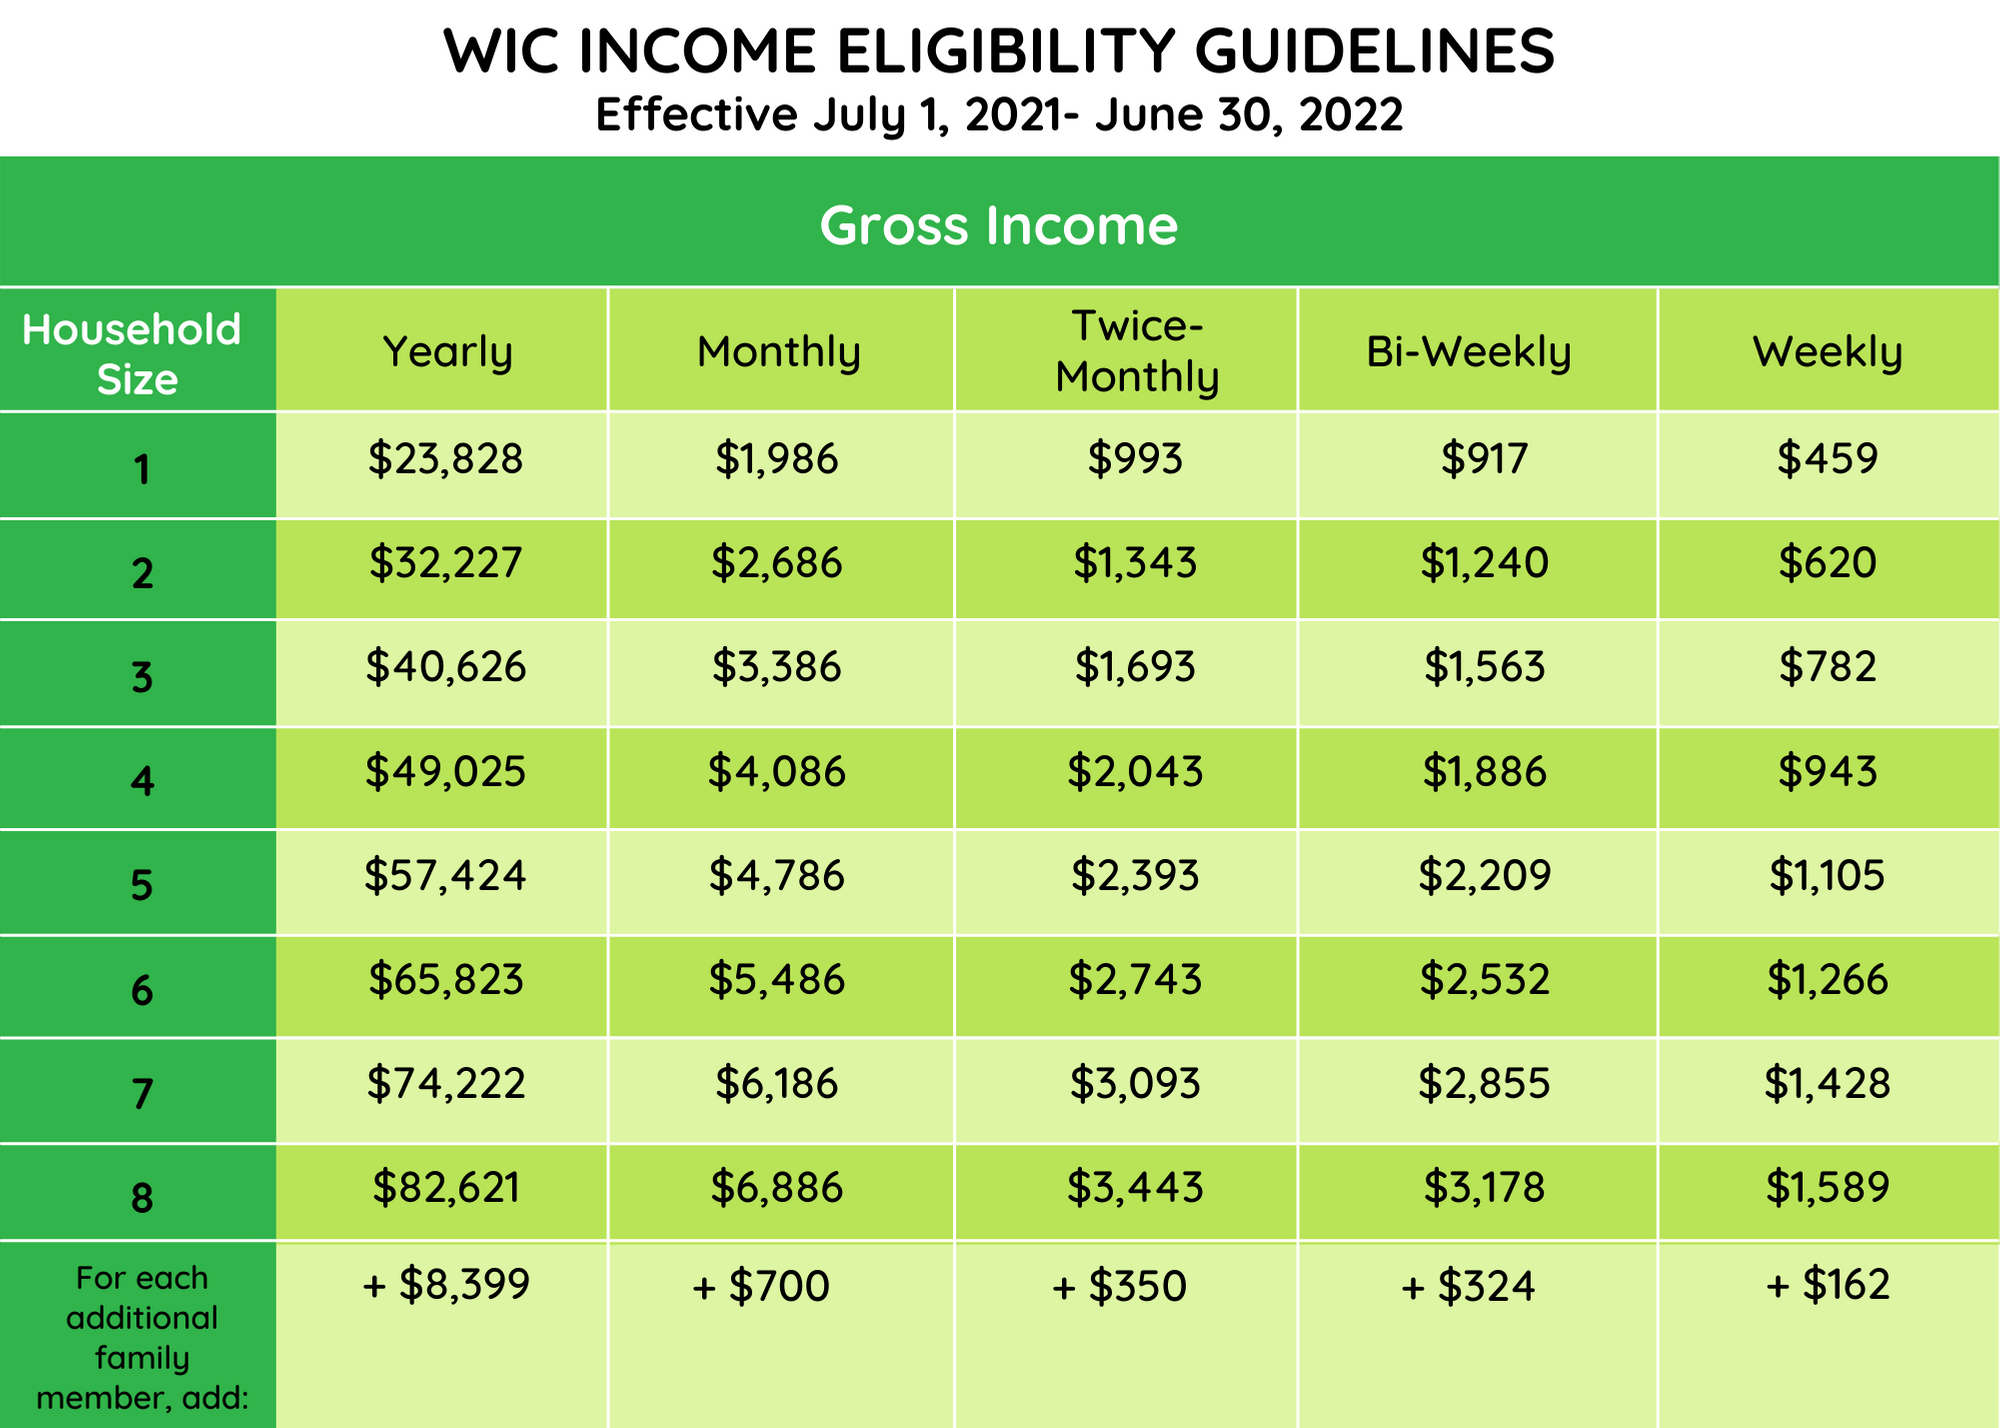 WIC Income Elignlity Guidelindes effective July1, 2021 - June 30, 2022